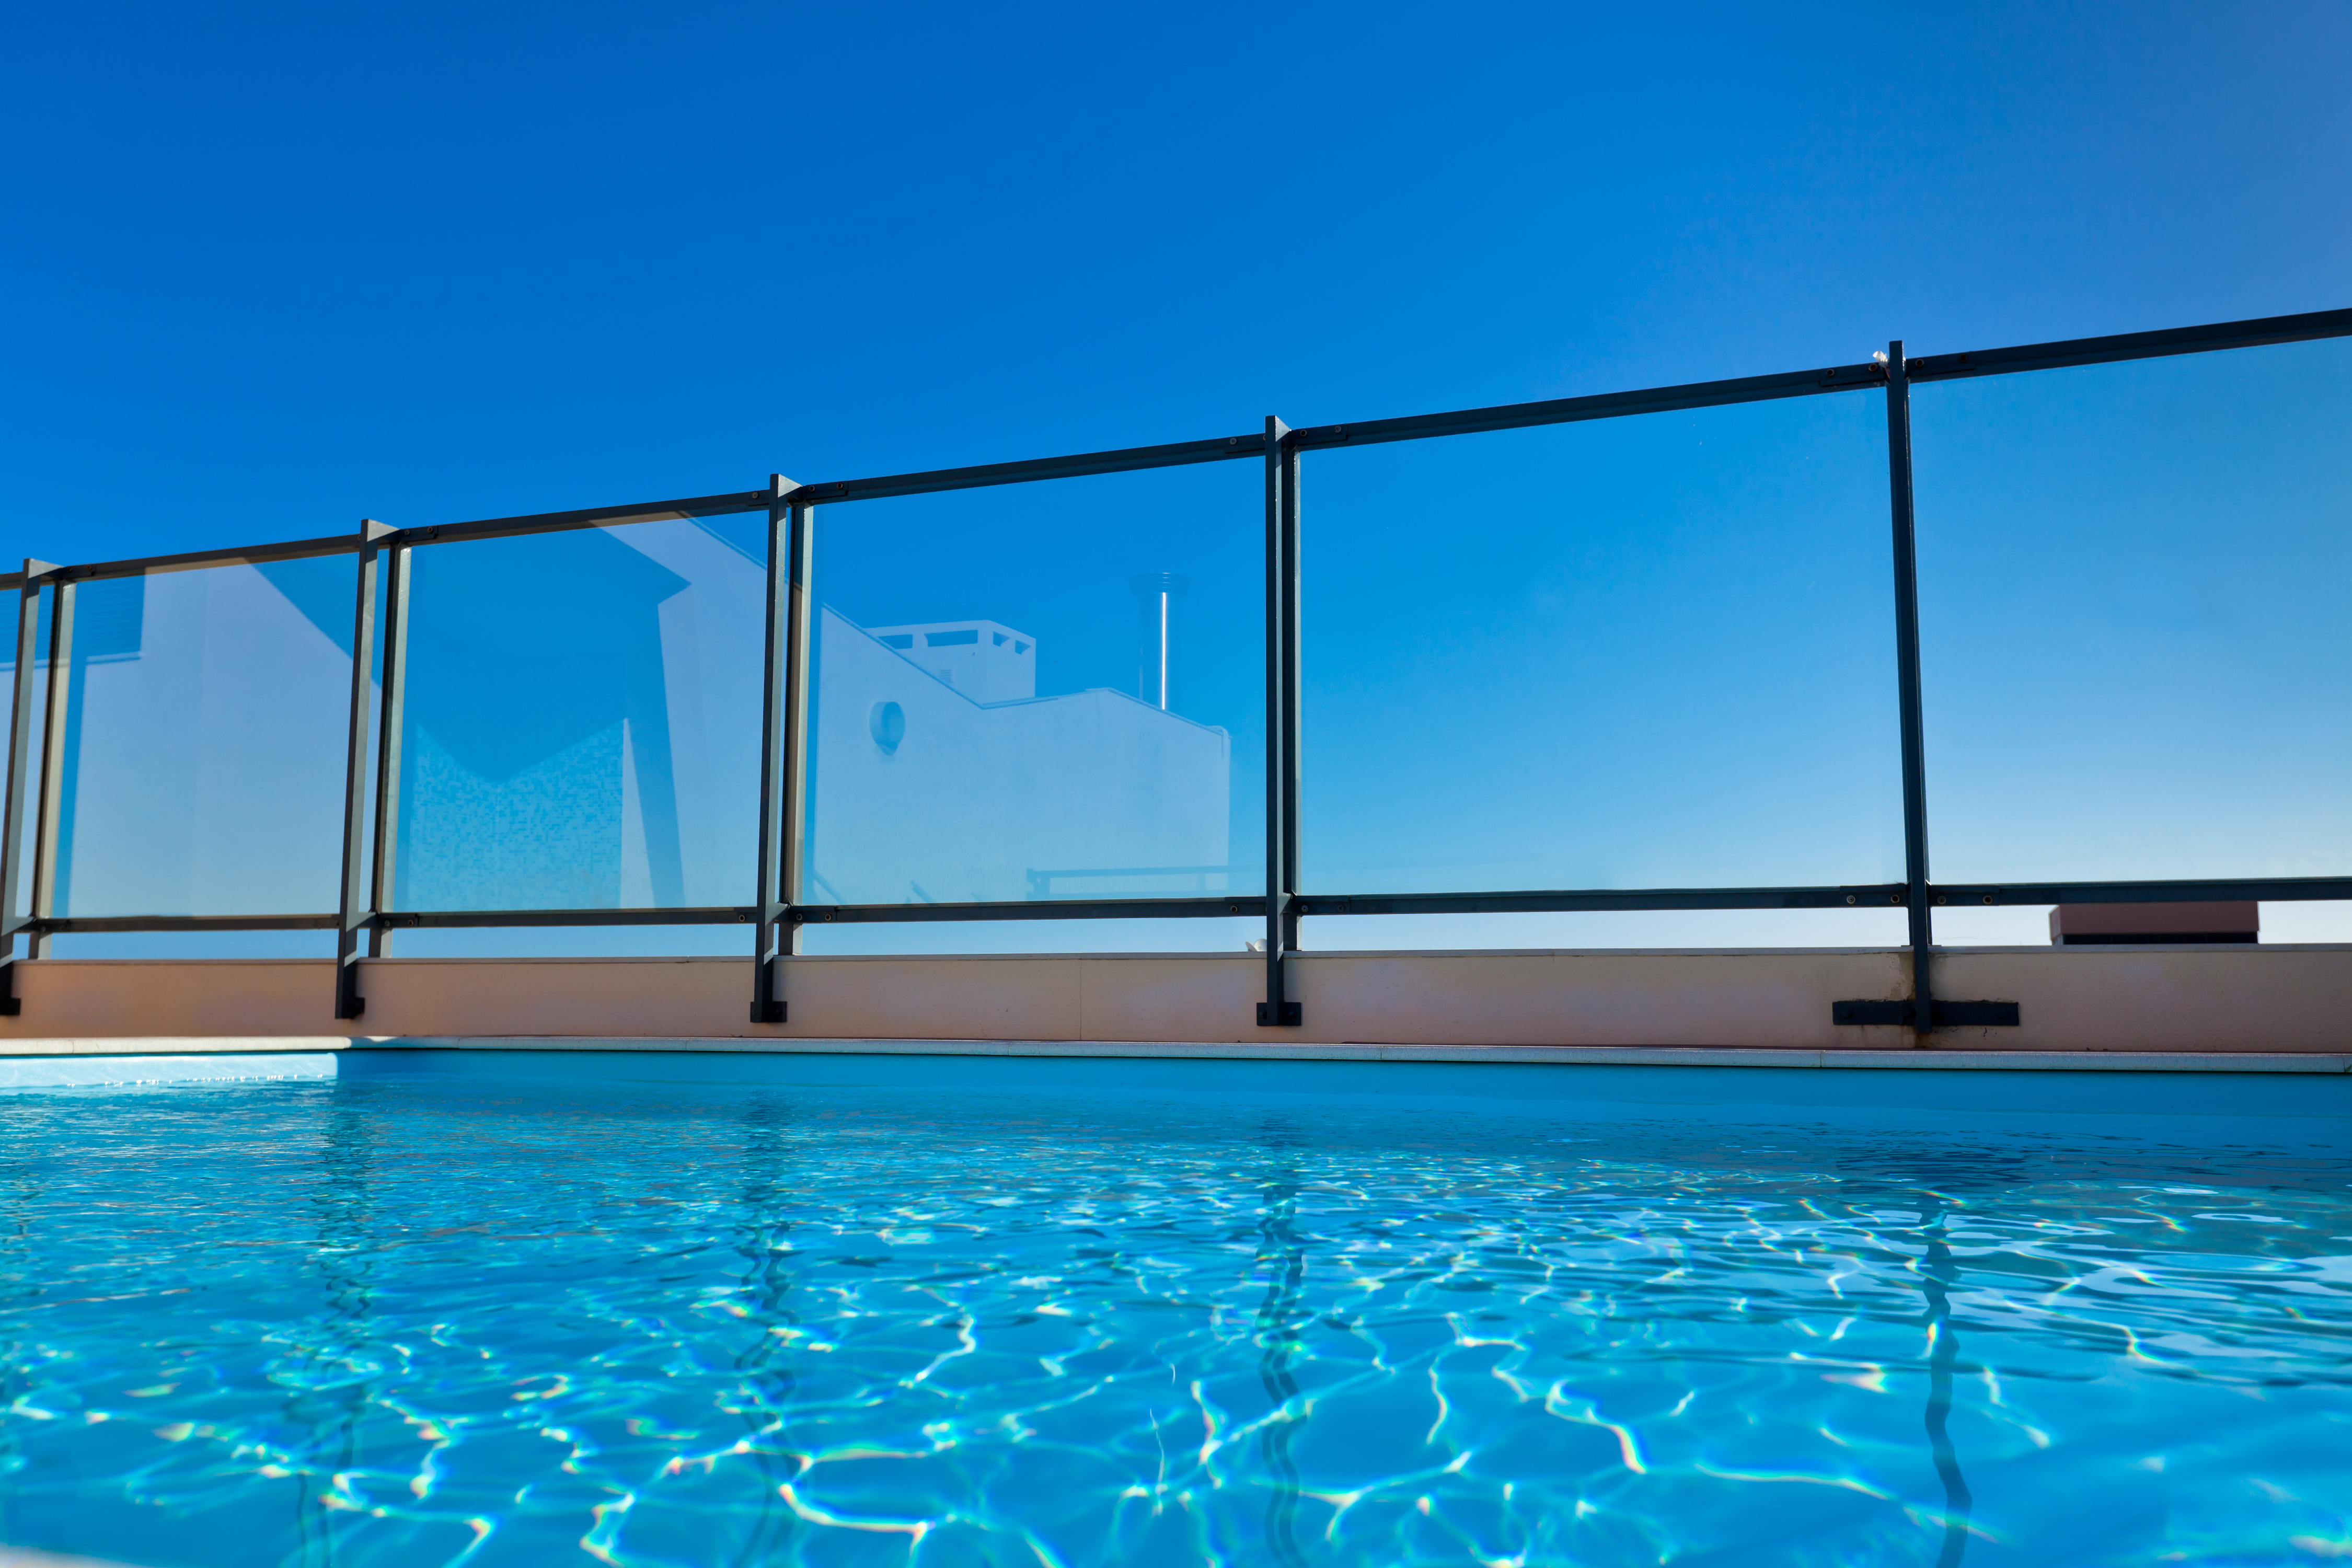 Swimming pool fence laws in georgia - Swimming pool fence regulations qld ...